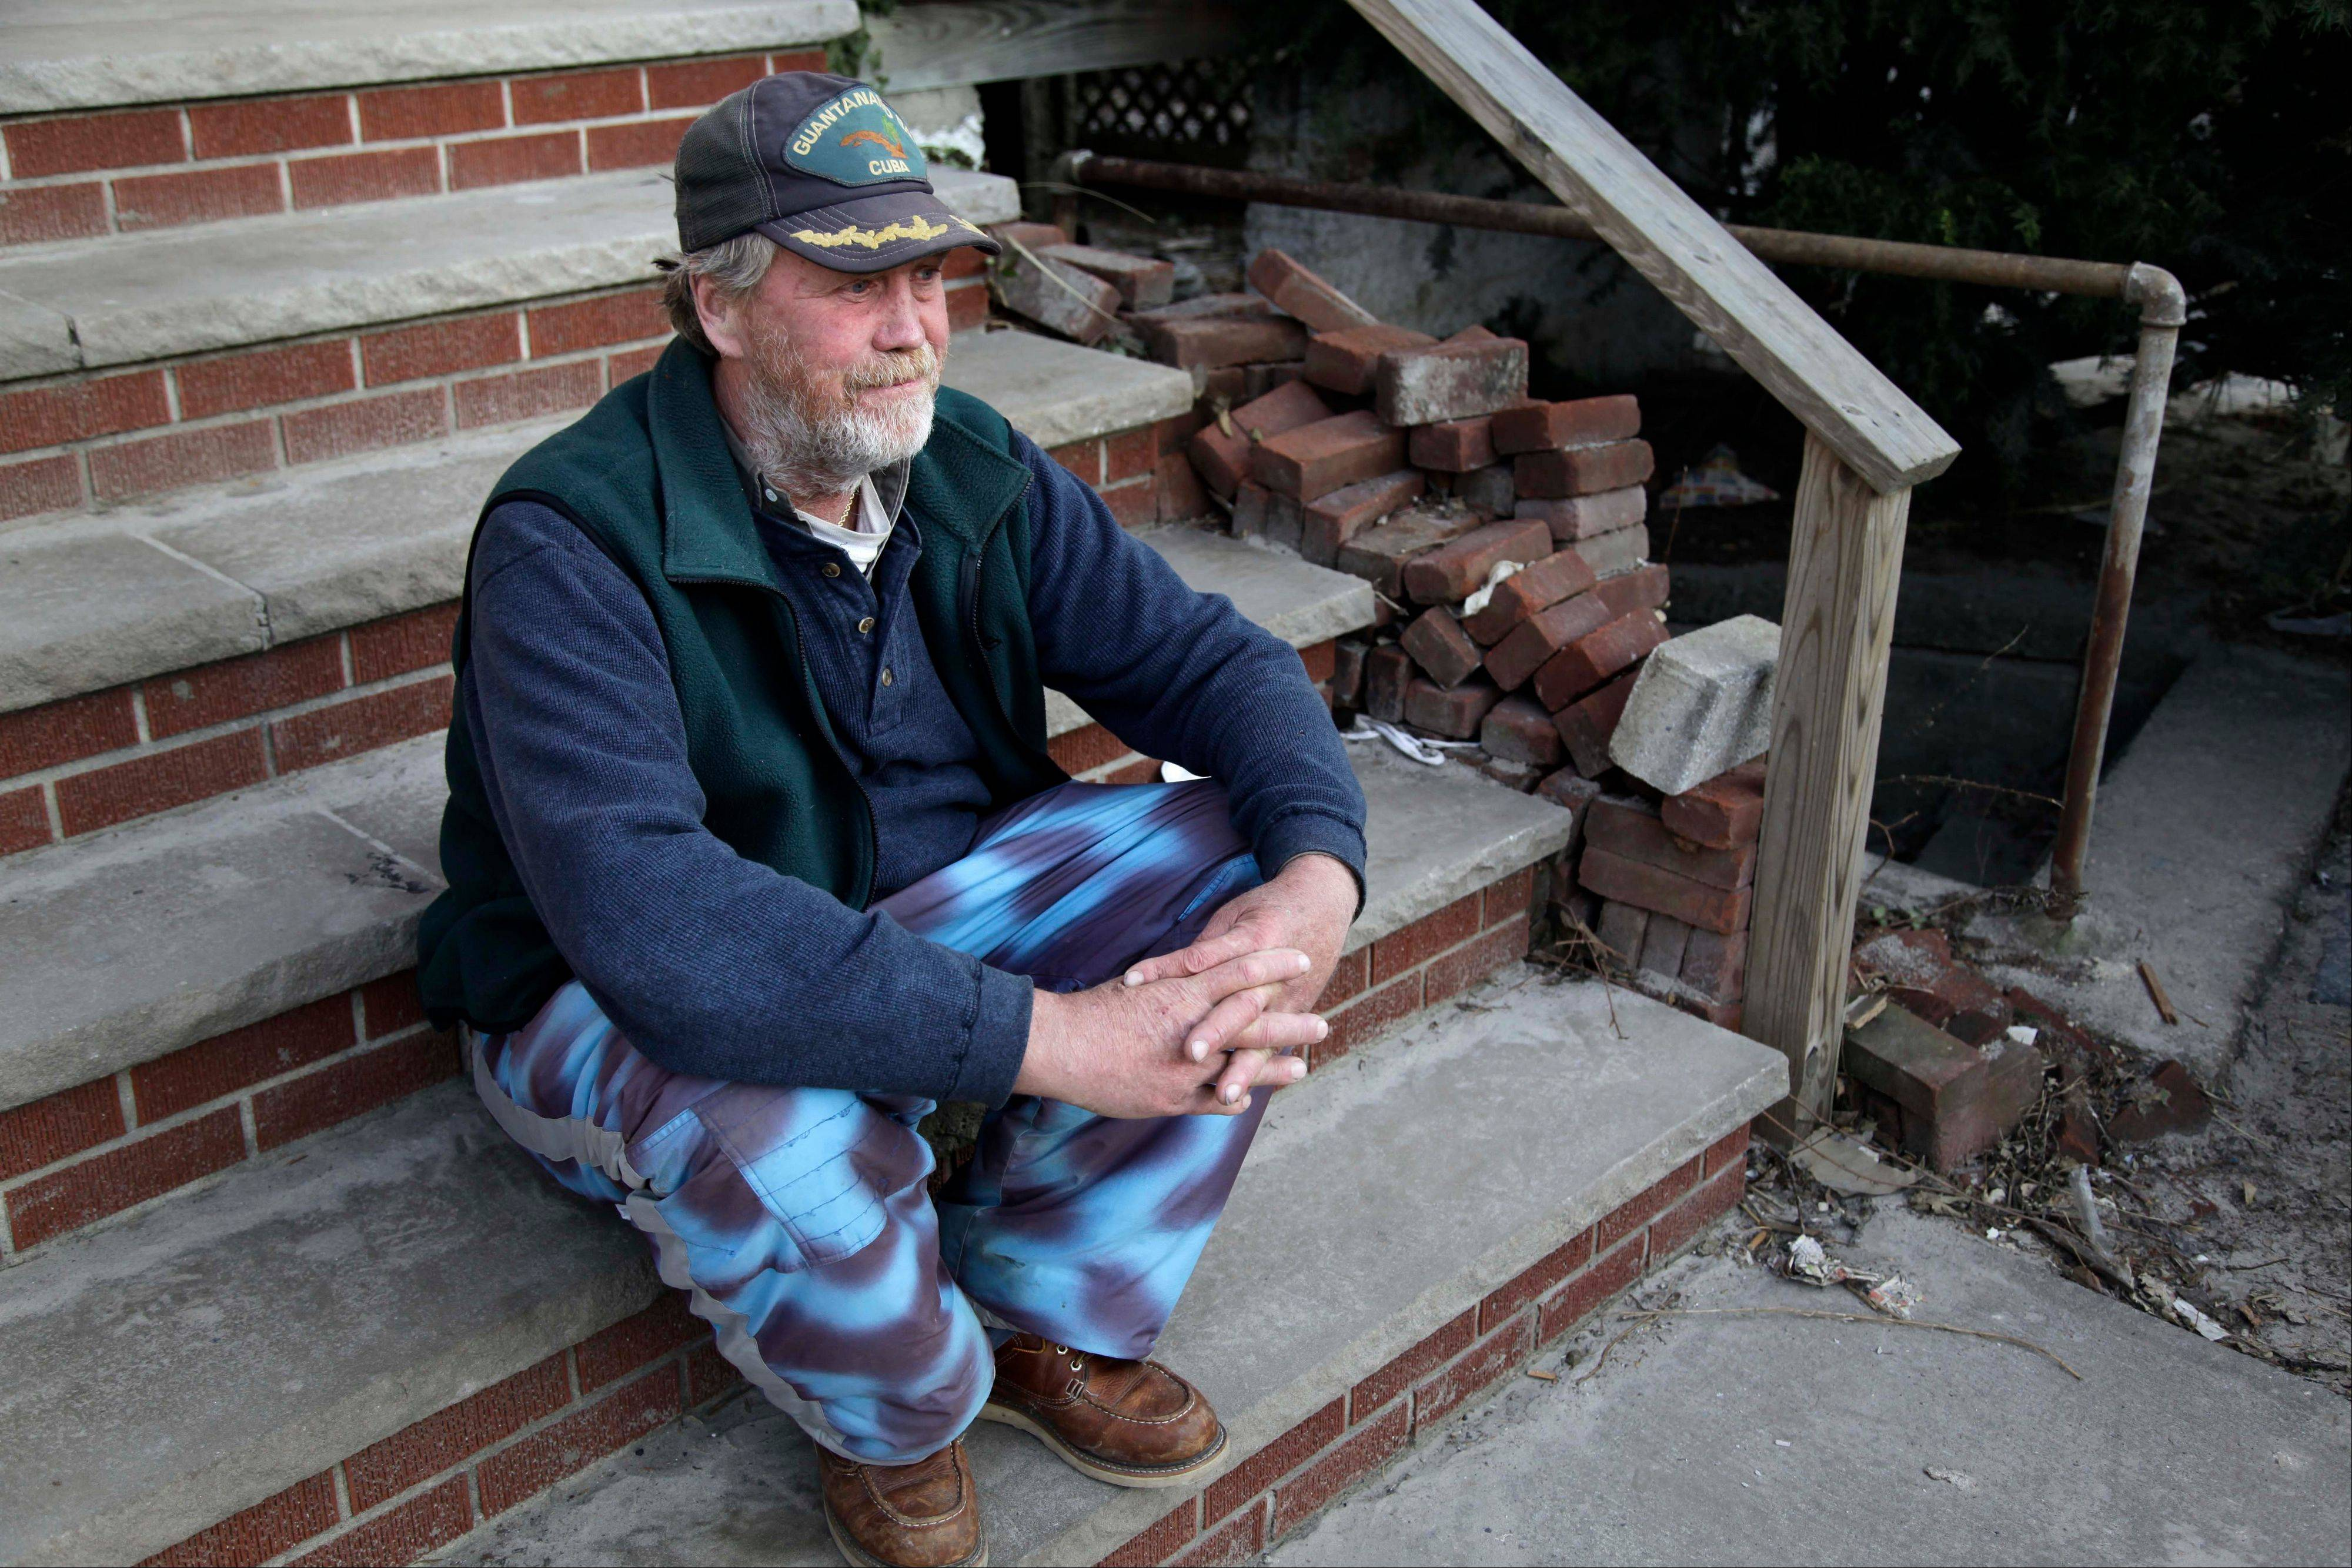 John Frawley sits on the porch of his house, which was damaged during Superstorm Sandy.